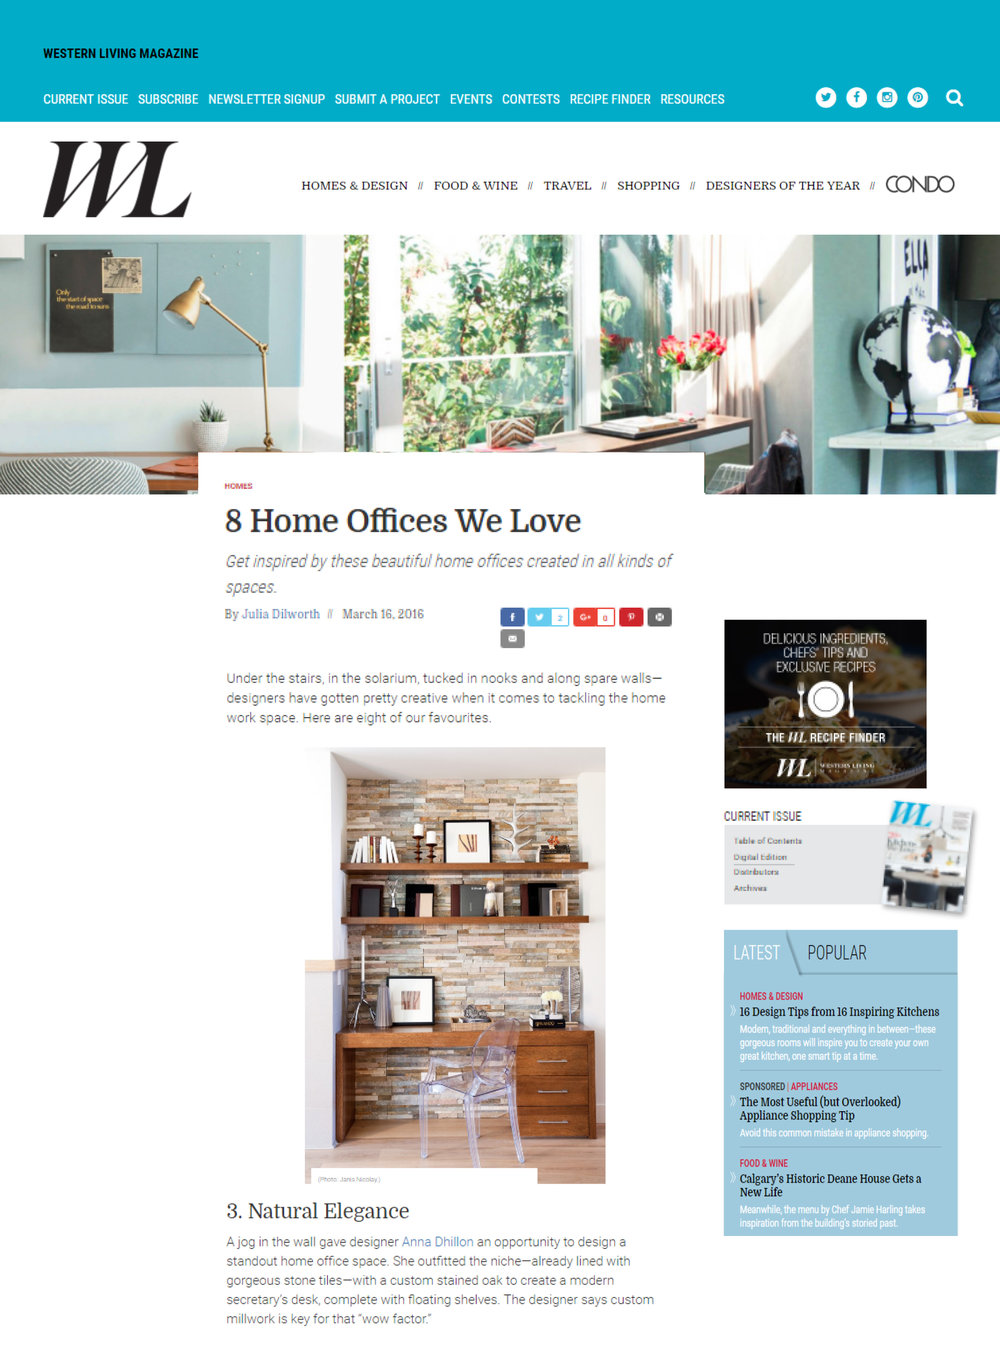 16_03-WLM-8_Home_Office_We_Love_2016.jpg